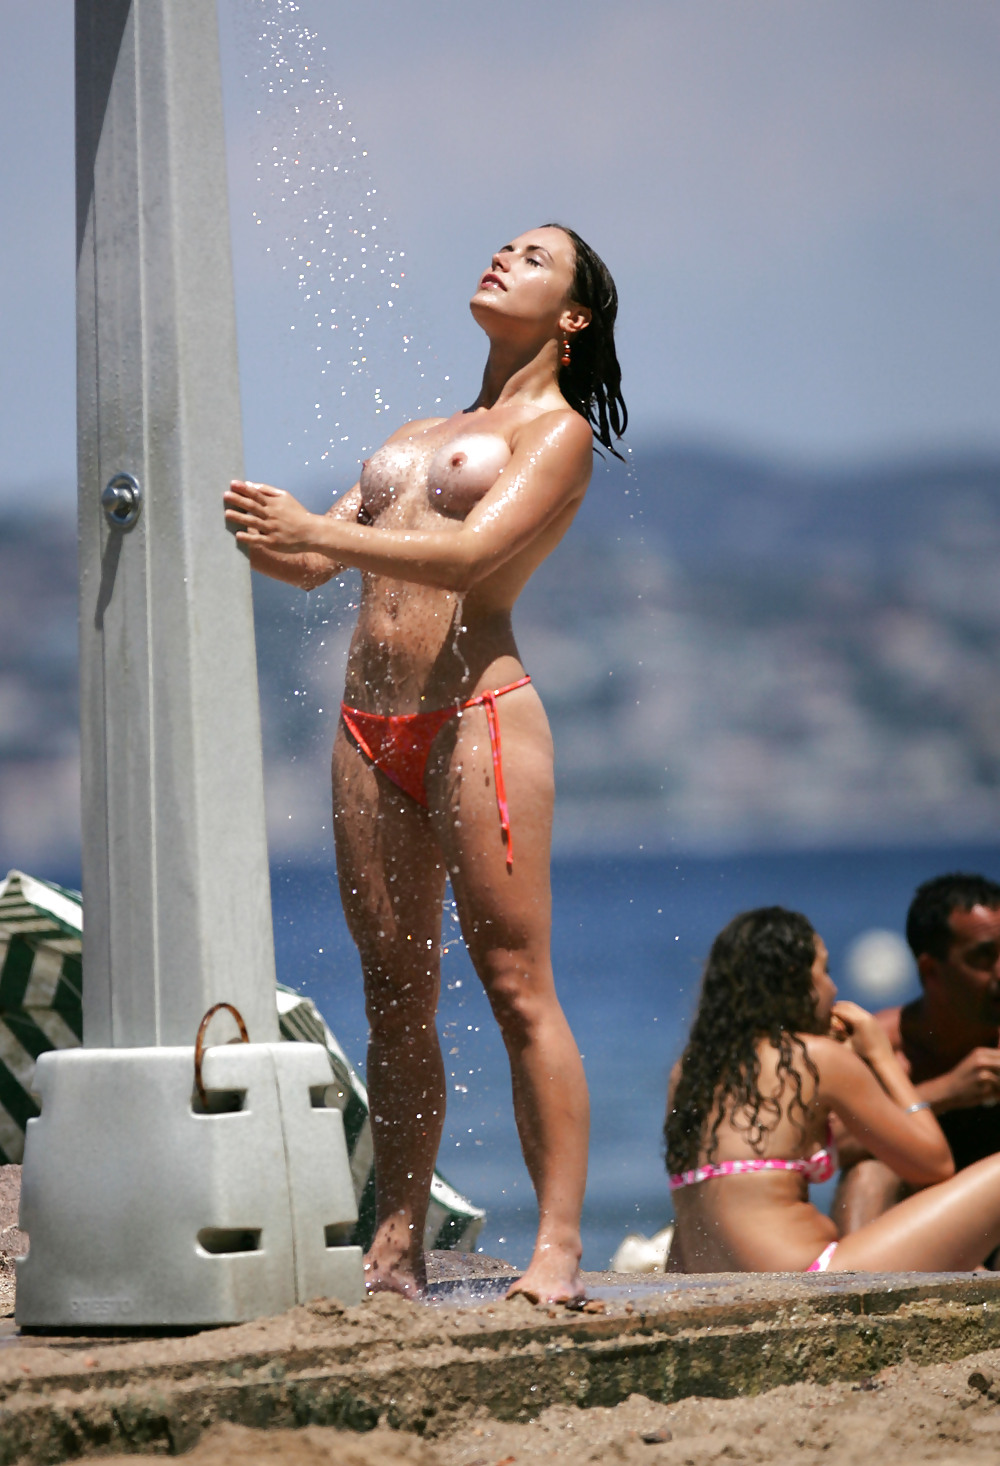 Uma thurman full frontal full frontal celebrity nude paparazzi beach full frontal blondes sultry